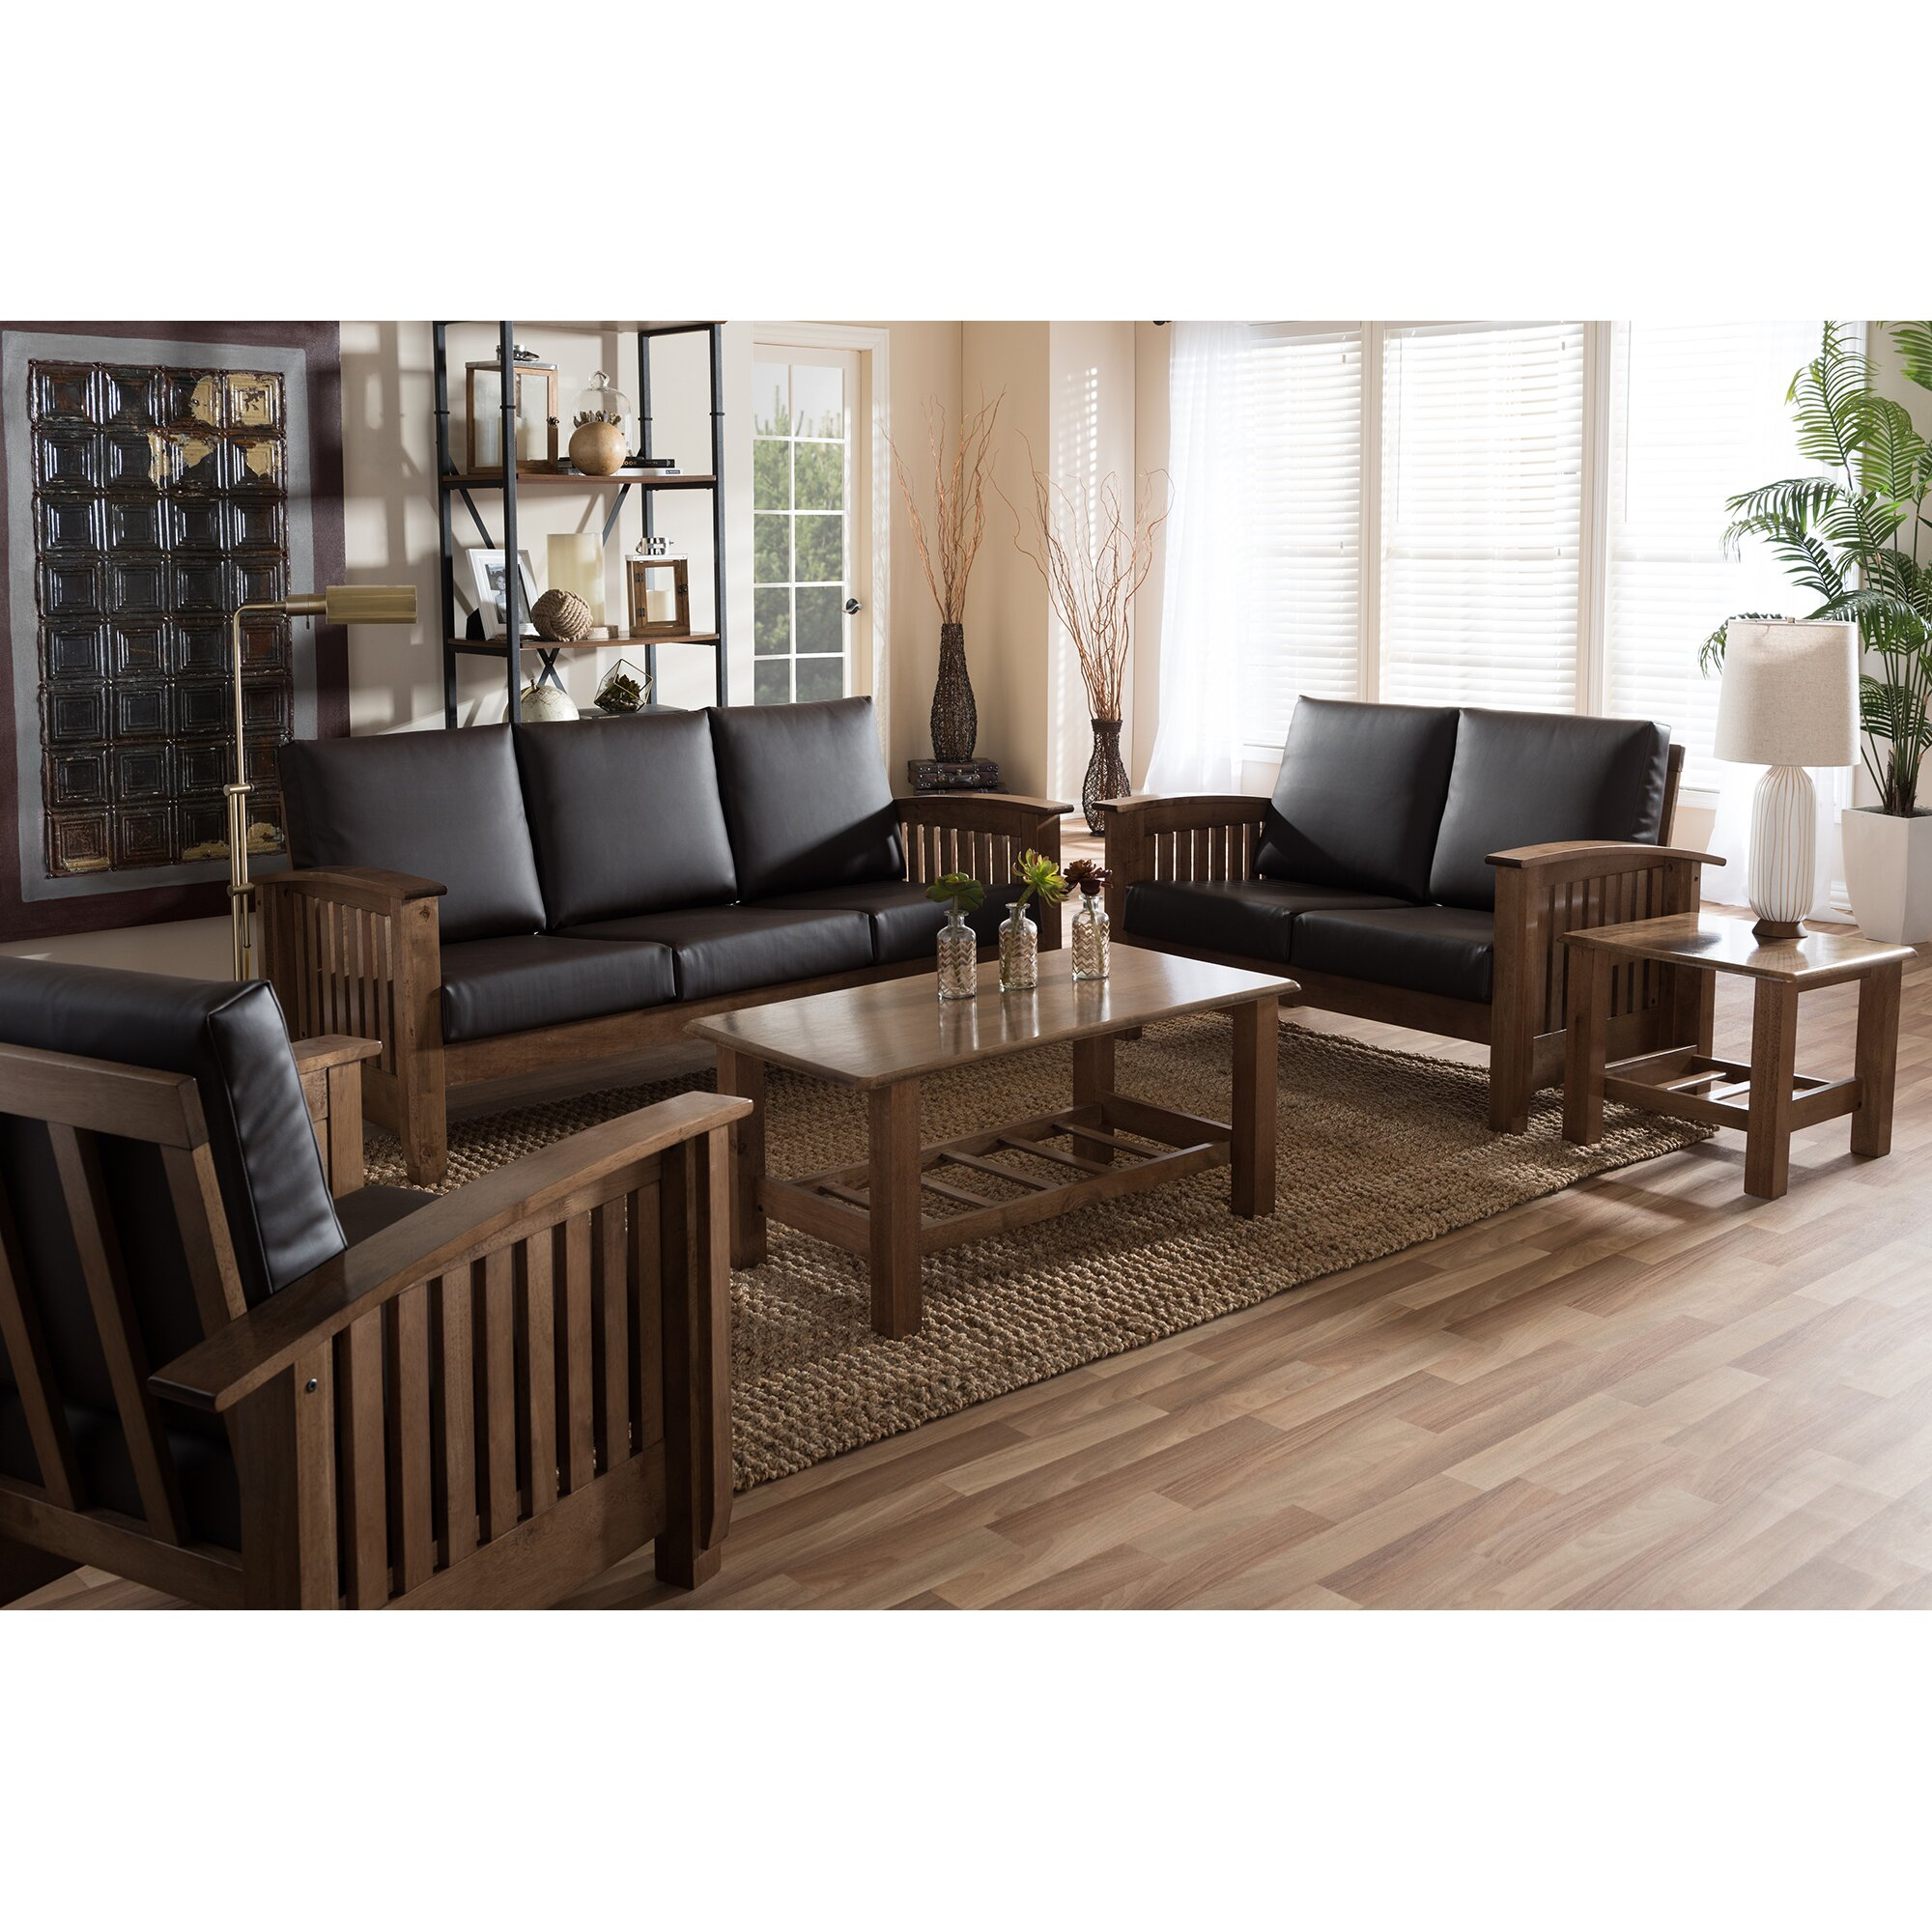 Baxton studio 5 piece living room set wayfair for Whole living room furniture sets